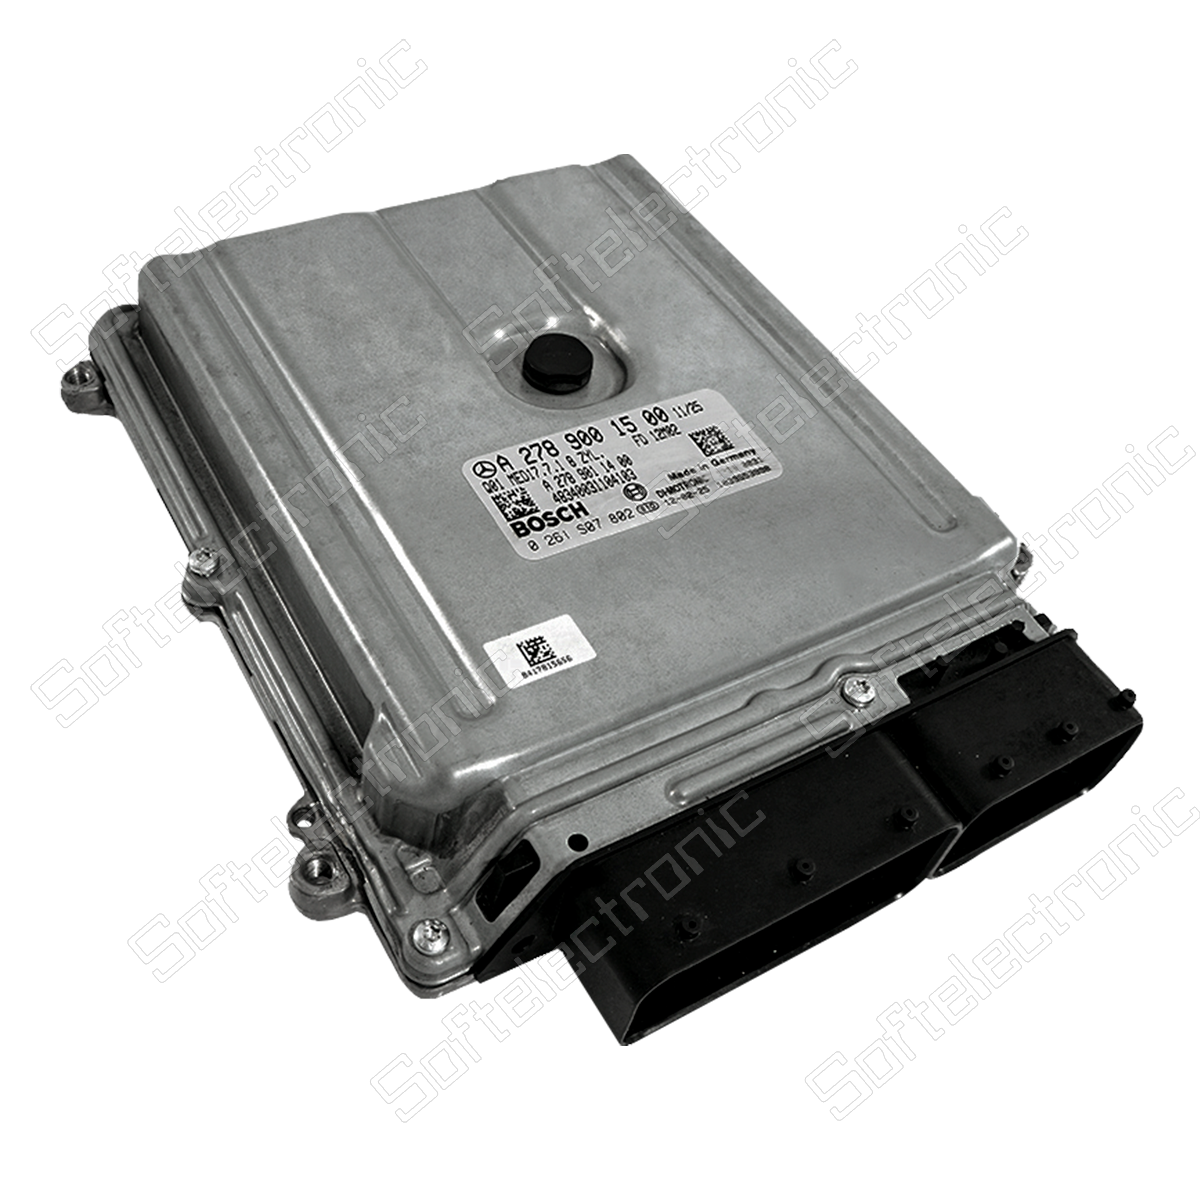 Repair Engine Control Unit Mercedes AMG 6/8 zyl